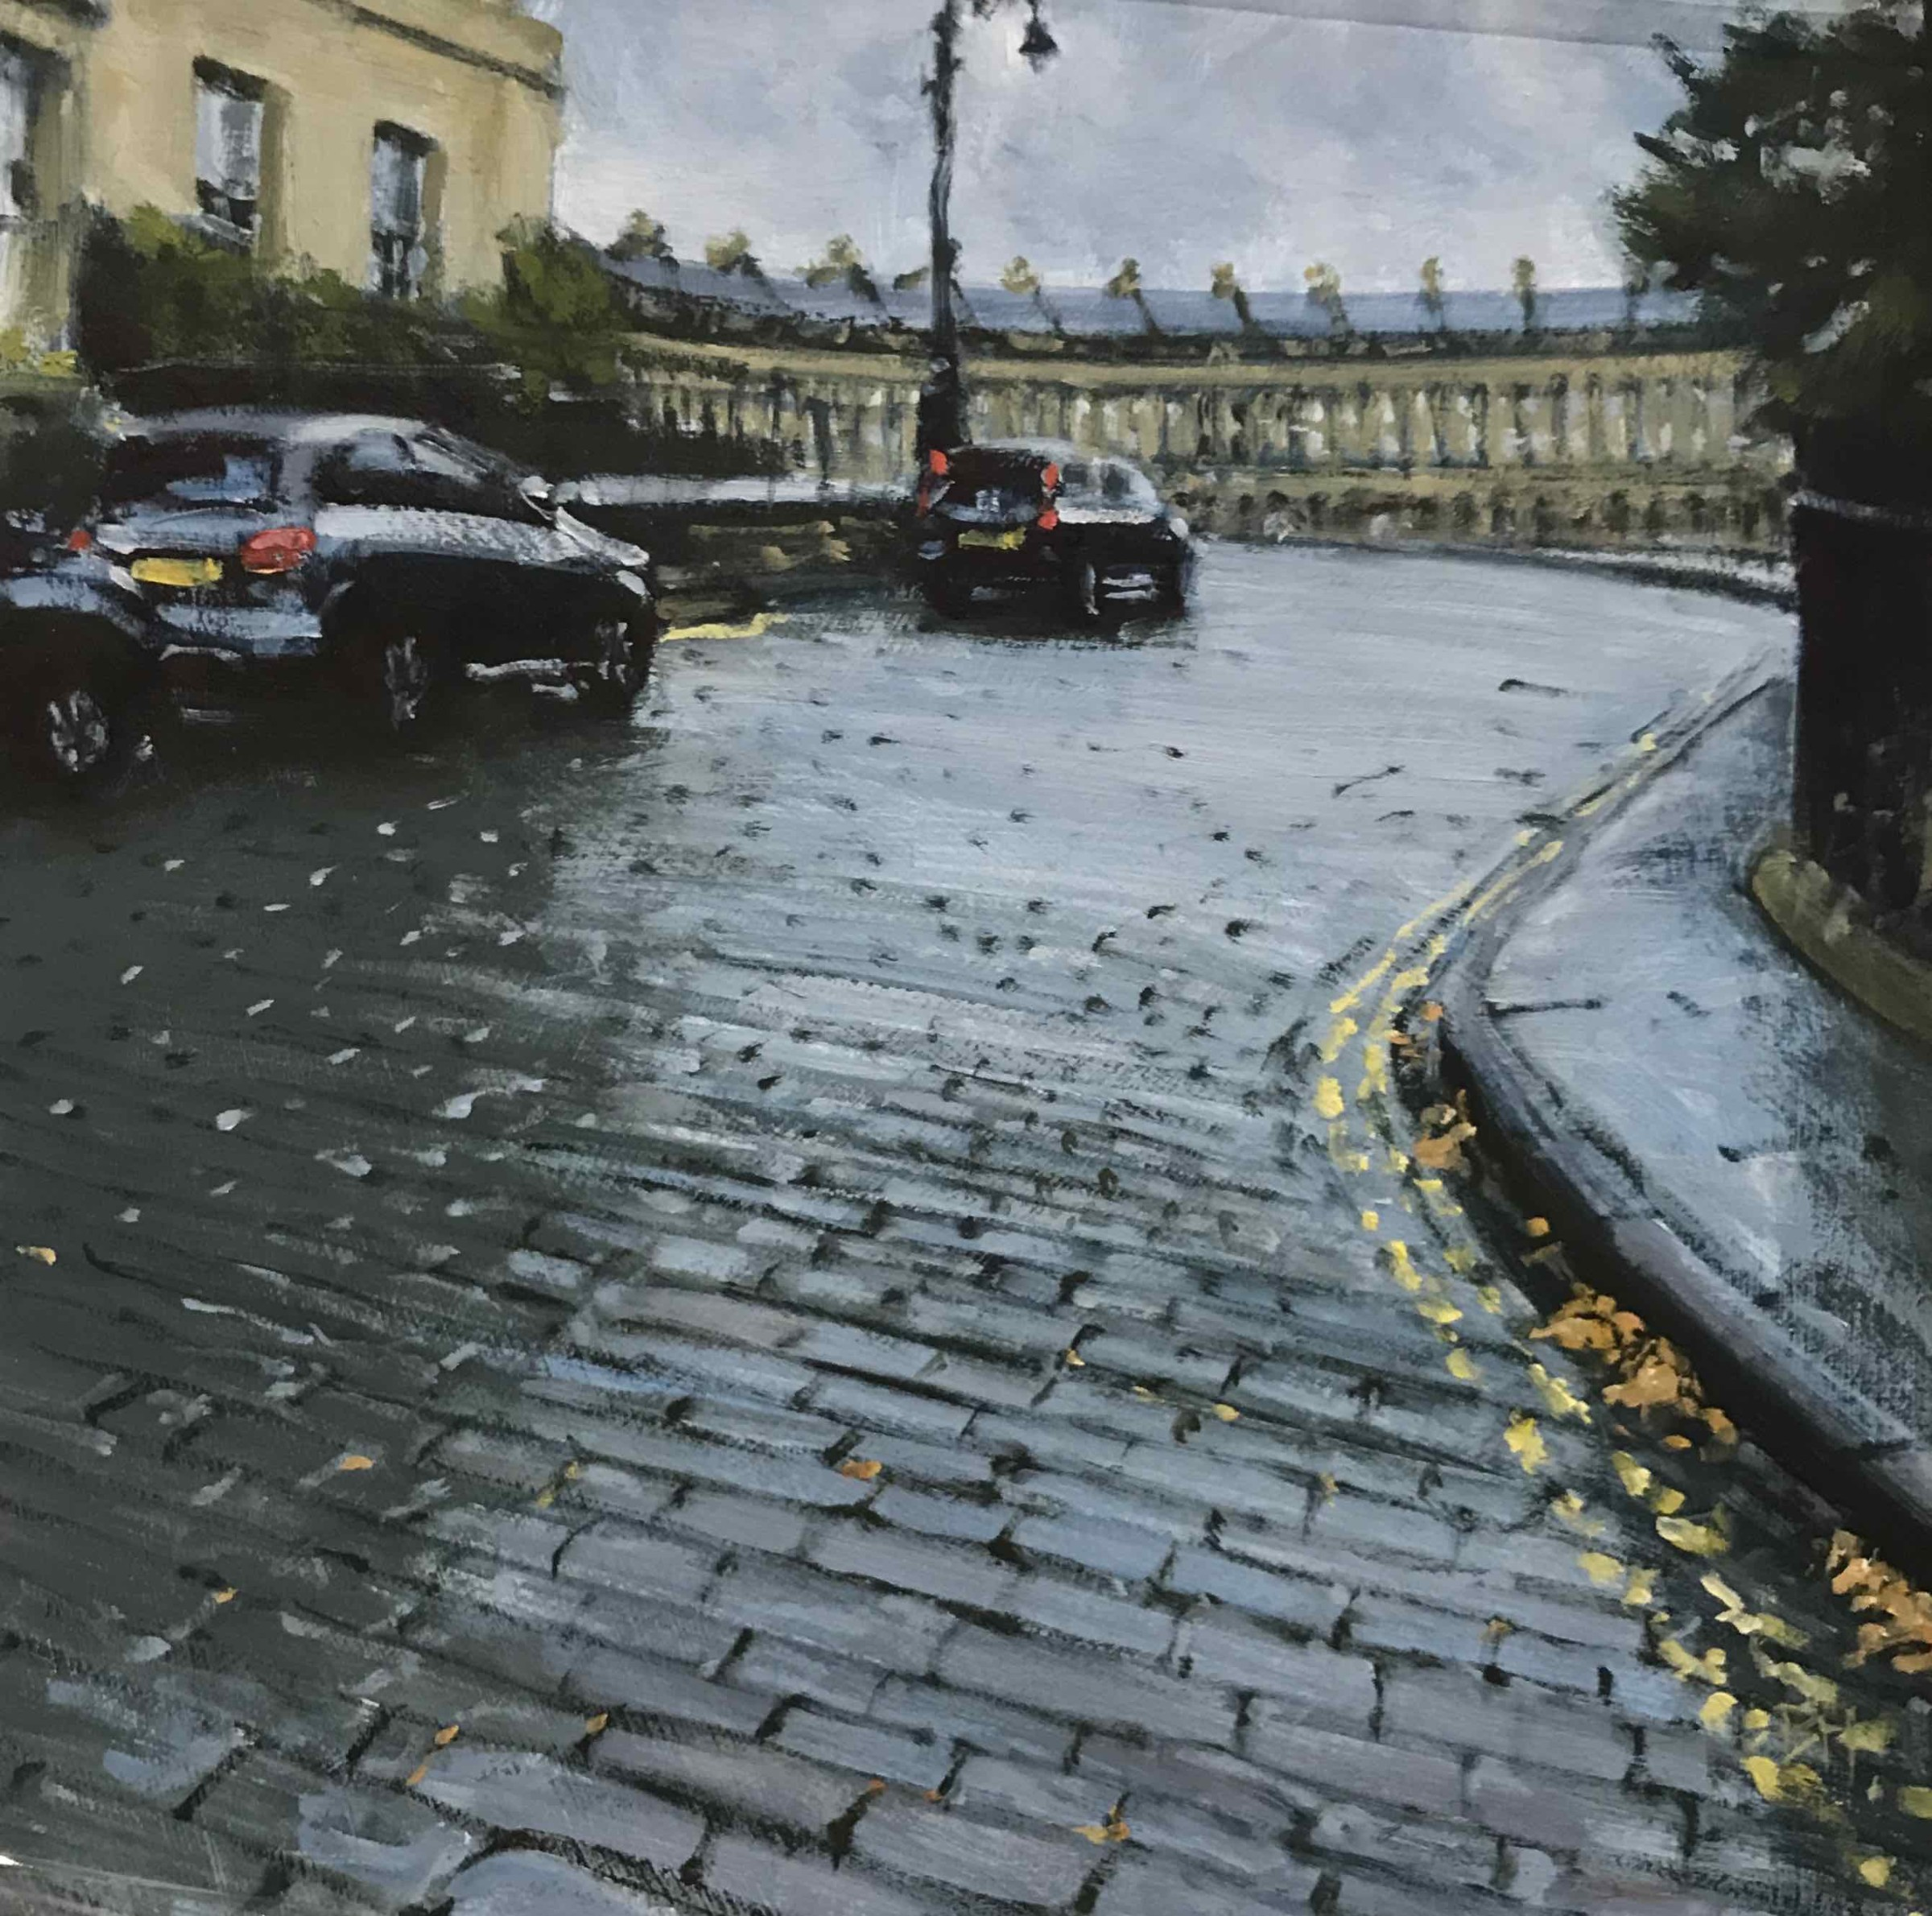 """<span class=""""link fancybox-details-link""""><a href=""""/artists/181-ben-hughes/works/2976-ben-hughes-royal-crescent-study-ii/"""">View Detail Page</a></span><div class=""""artist""""><strong>Ben Hughes</strong></div> <div class=""""title""""><em>Royal Crescent Study II</em></div> <div class=""""medium"""">Oil on Board</div> <div class=""""dimensions"""">20 x 20cm </div><div class=""""copyright_line"""">Copyright The Artist</div>"""